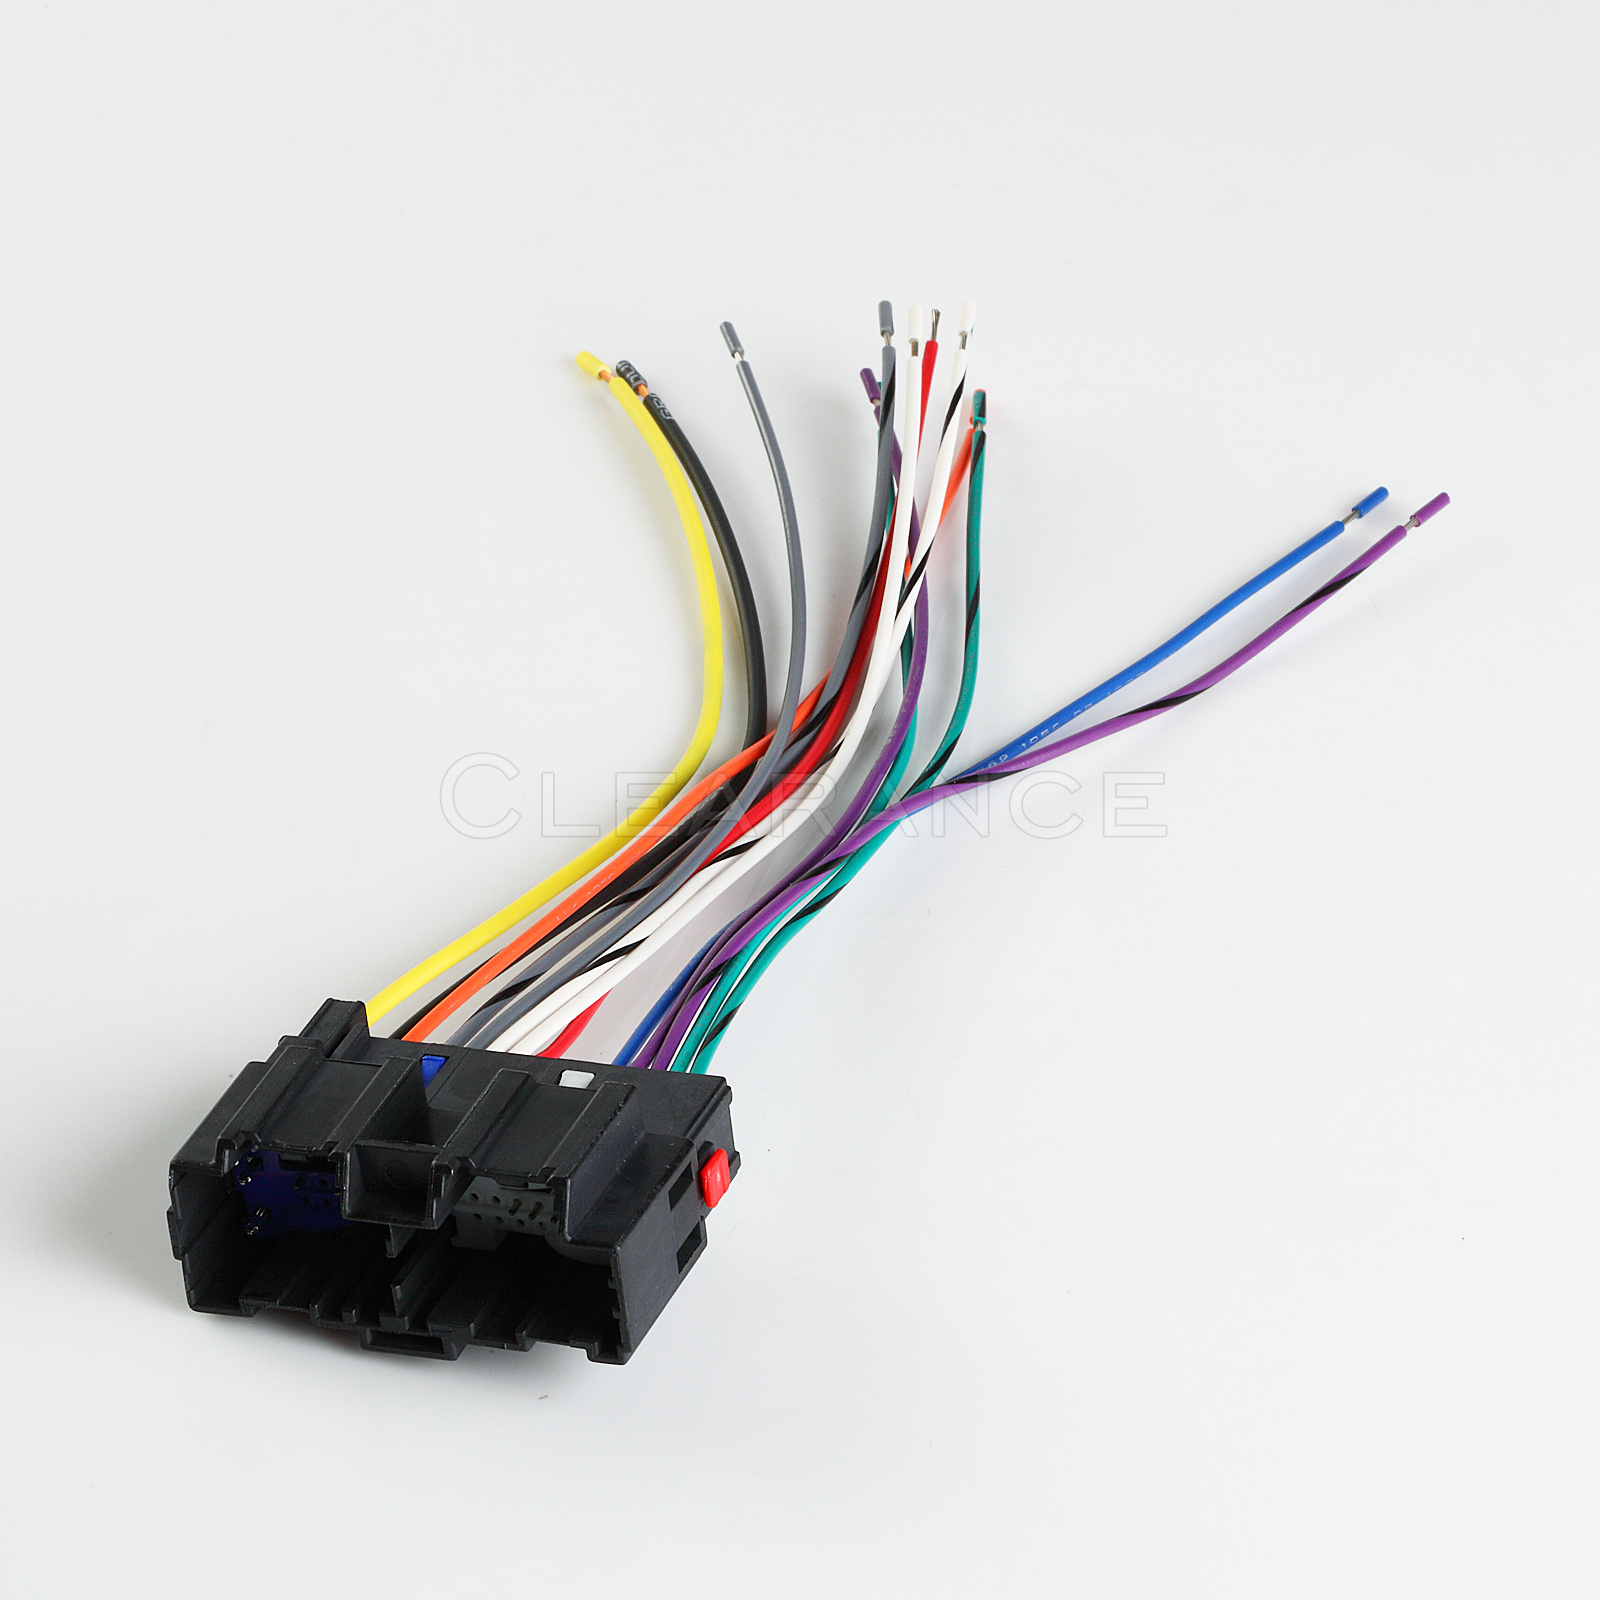 metra 70-2202 wiring harness for 2006 saturn vue/ion 2006 saturn vue stereo wiring 2005 saturn vue stereo wiring